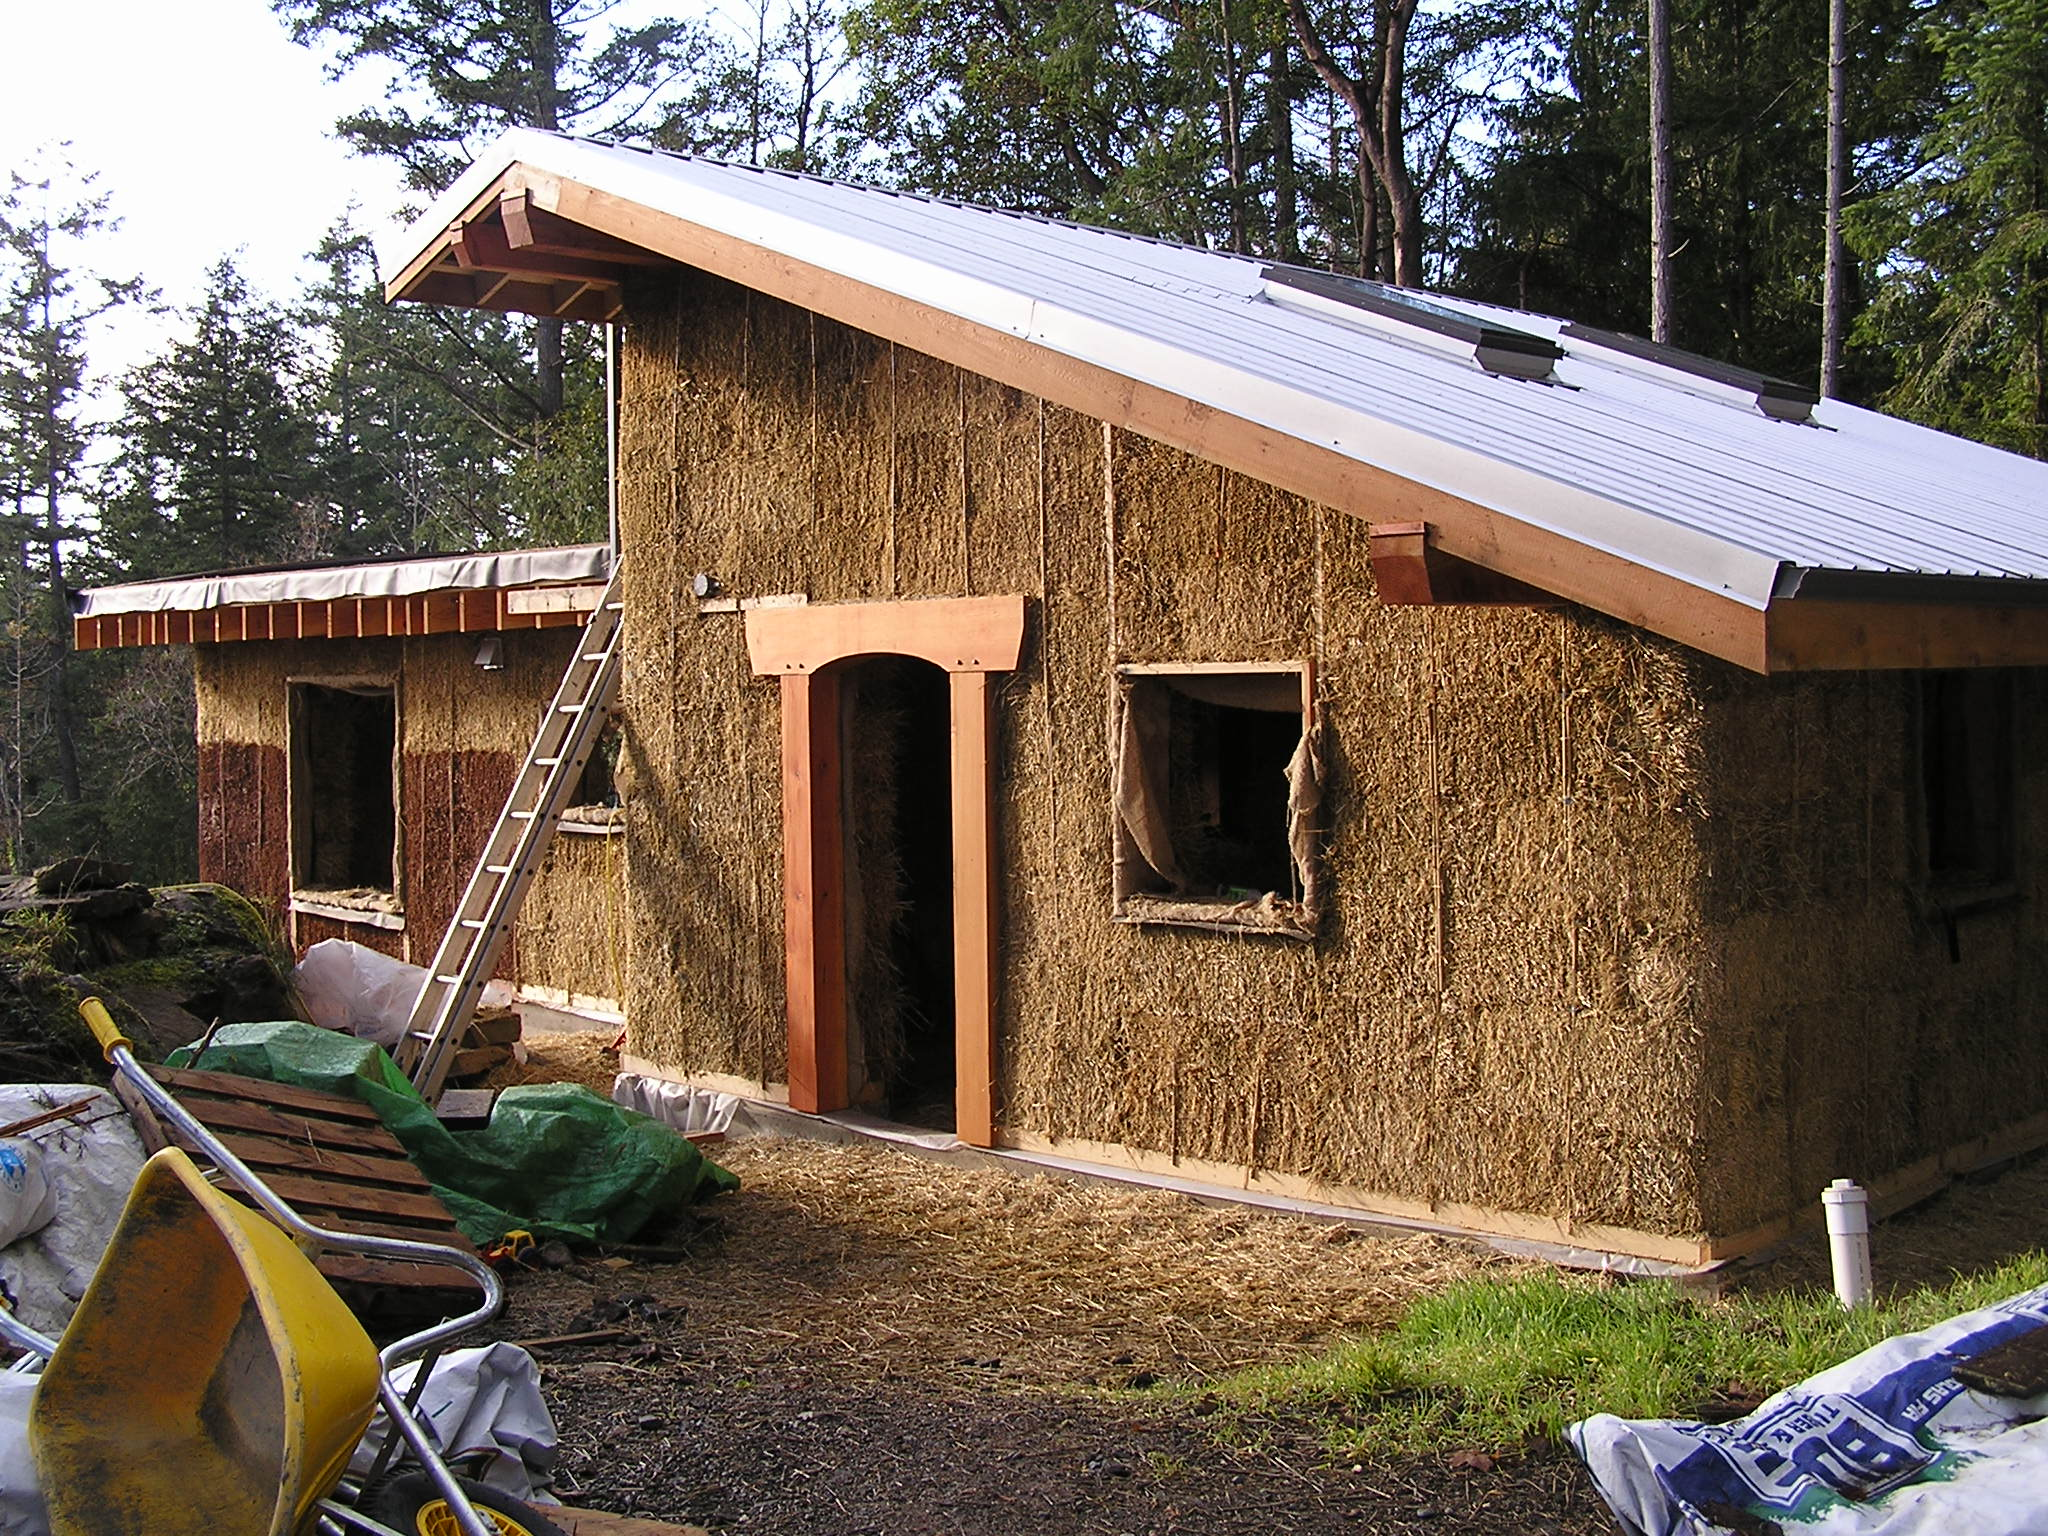 Chicken house design and construction in kenya